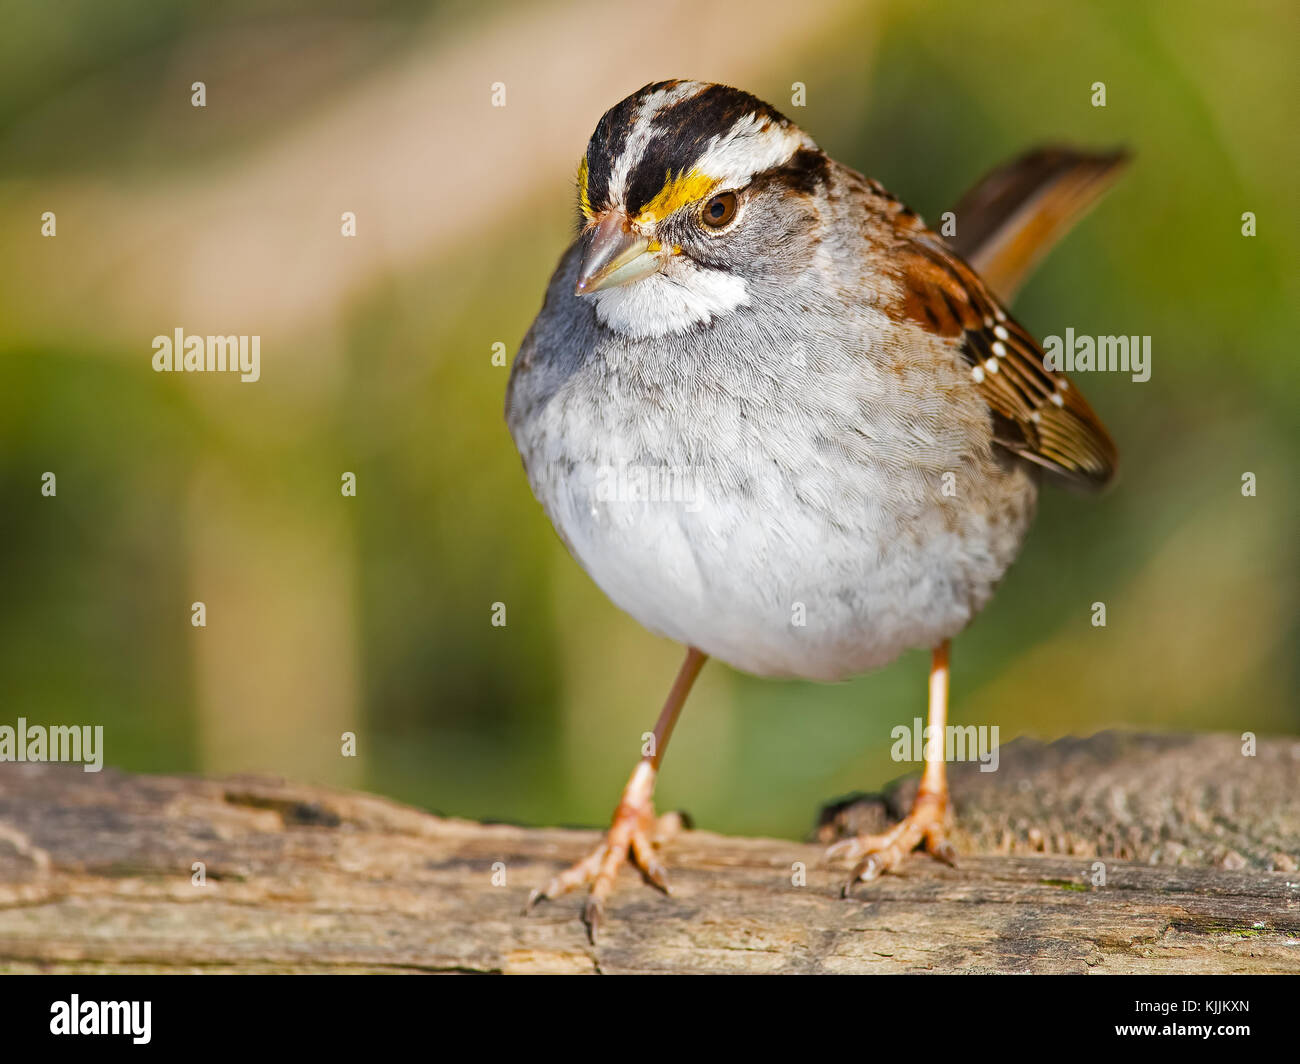 White-throated Sparrow - Stock Image